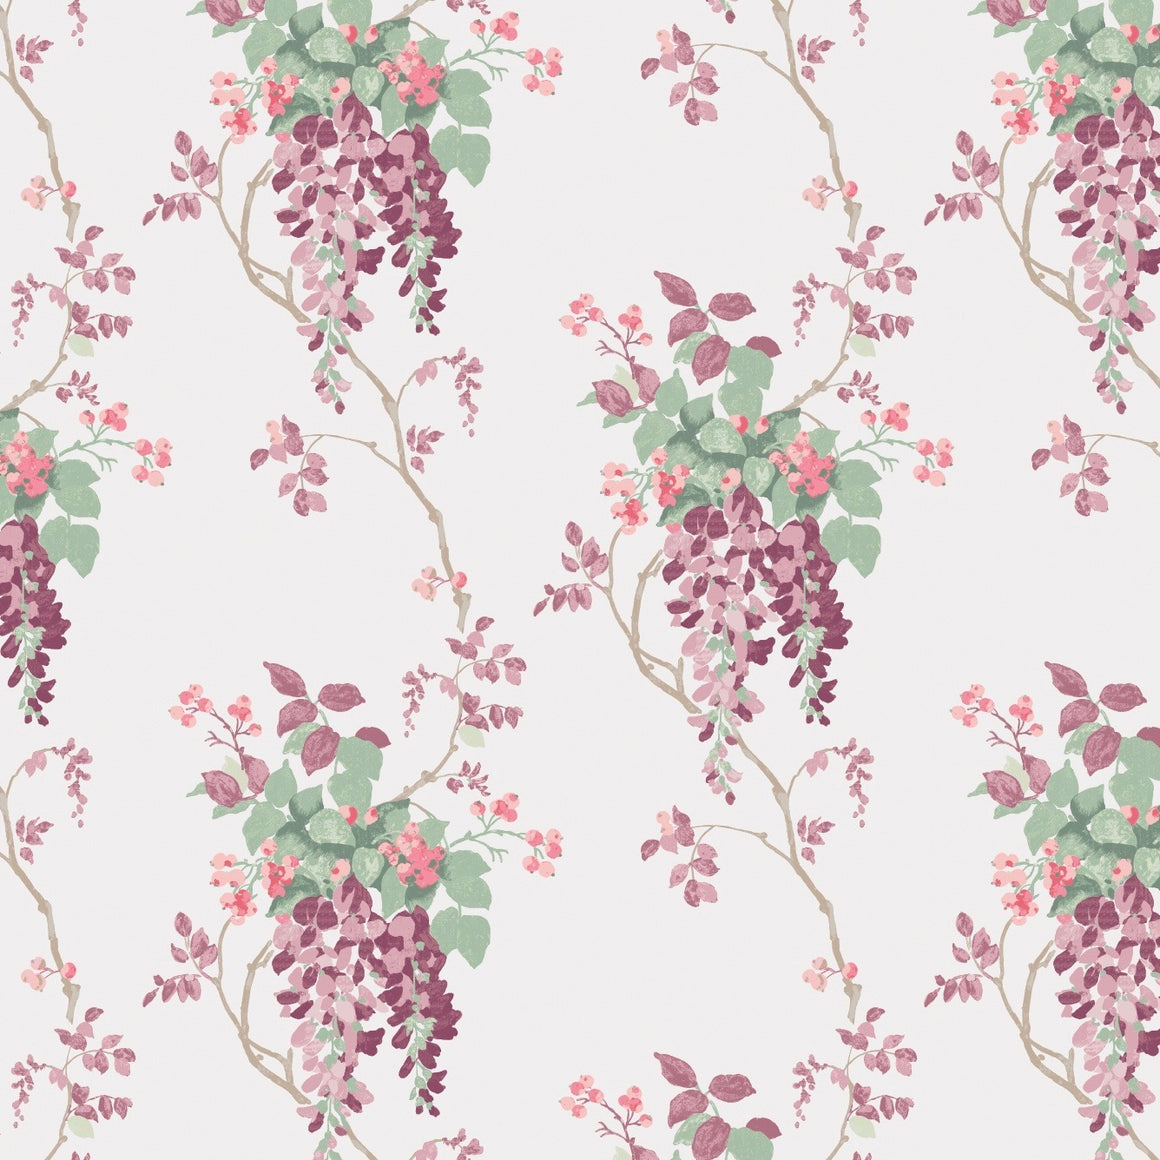 Laura Ashley Wisteria Blooms in Purple fabric